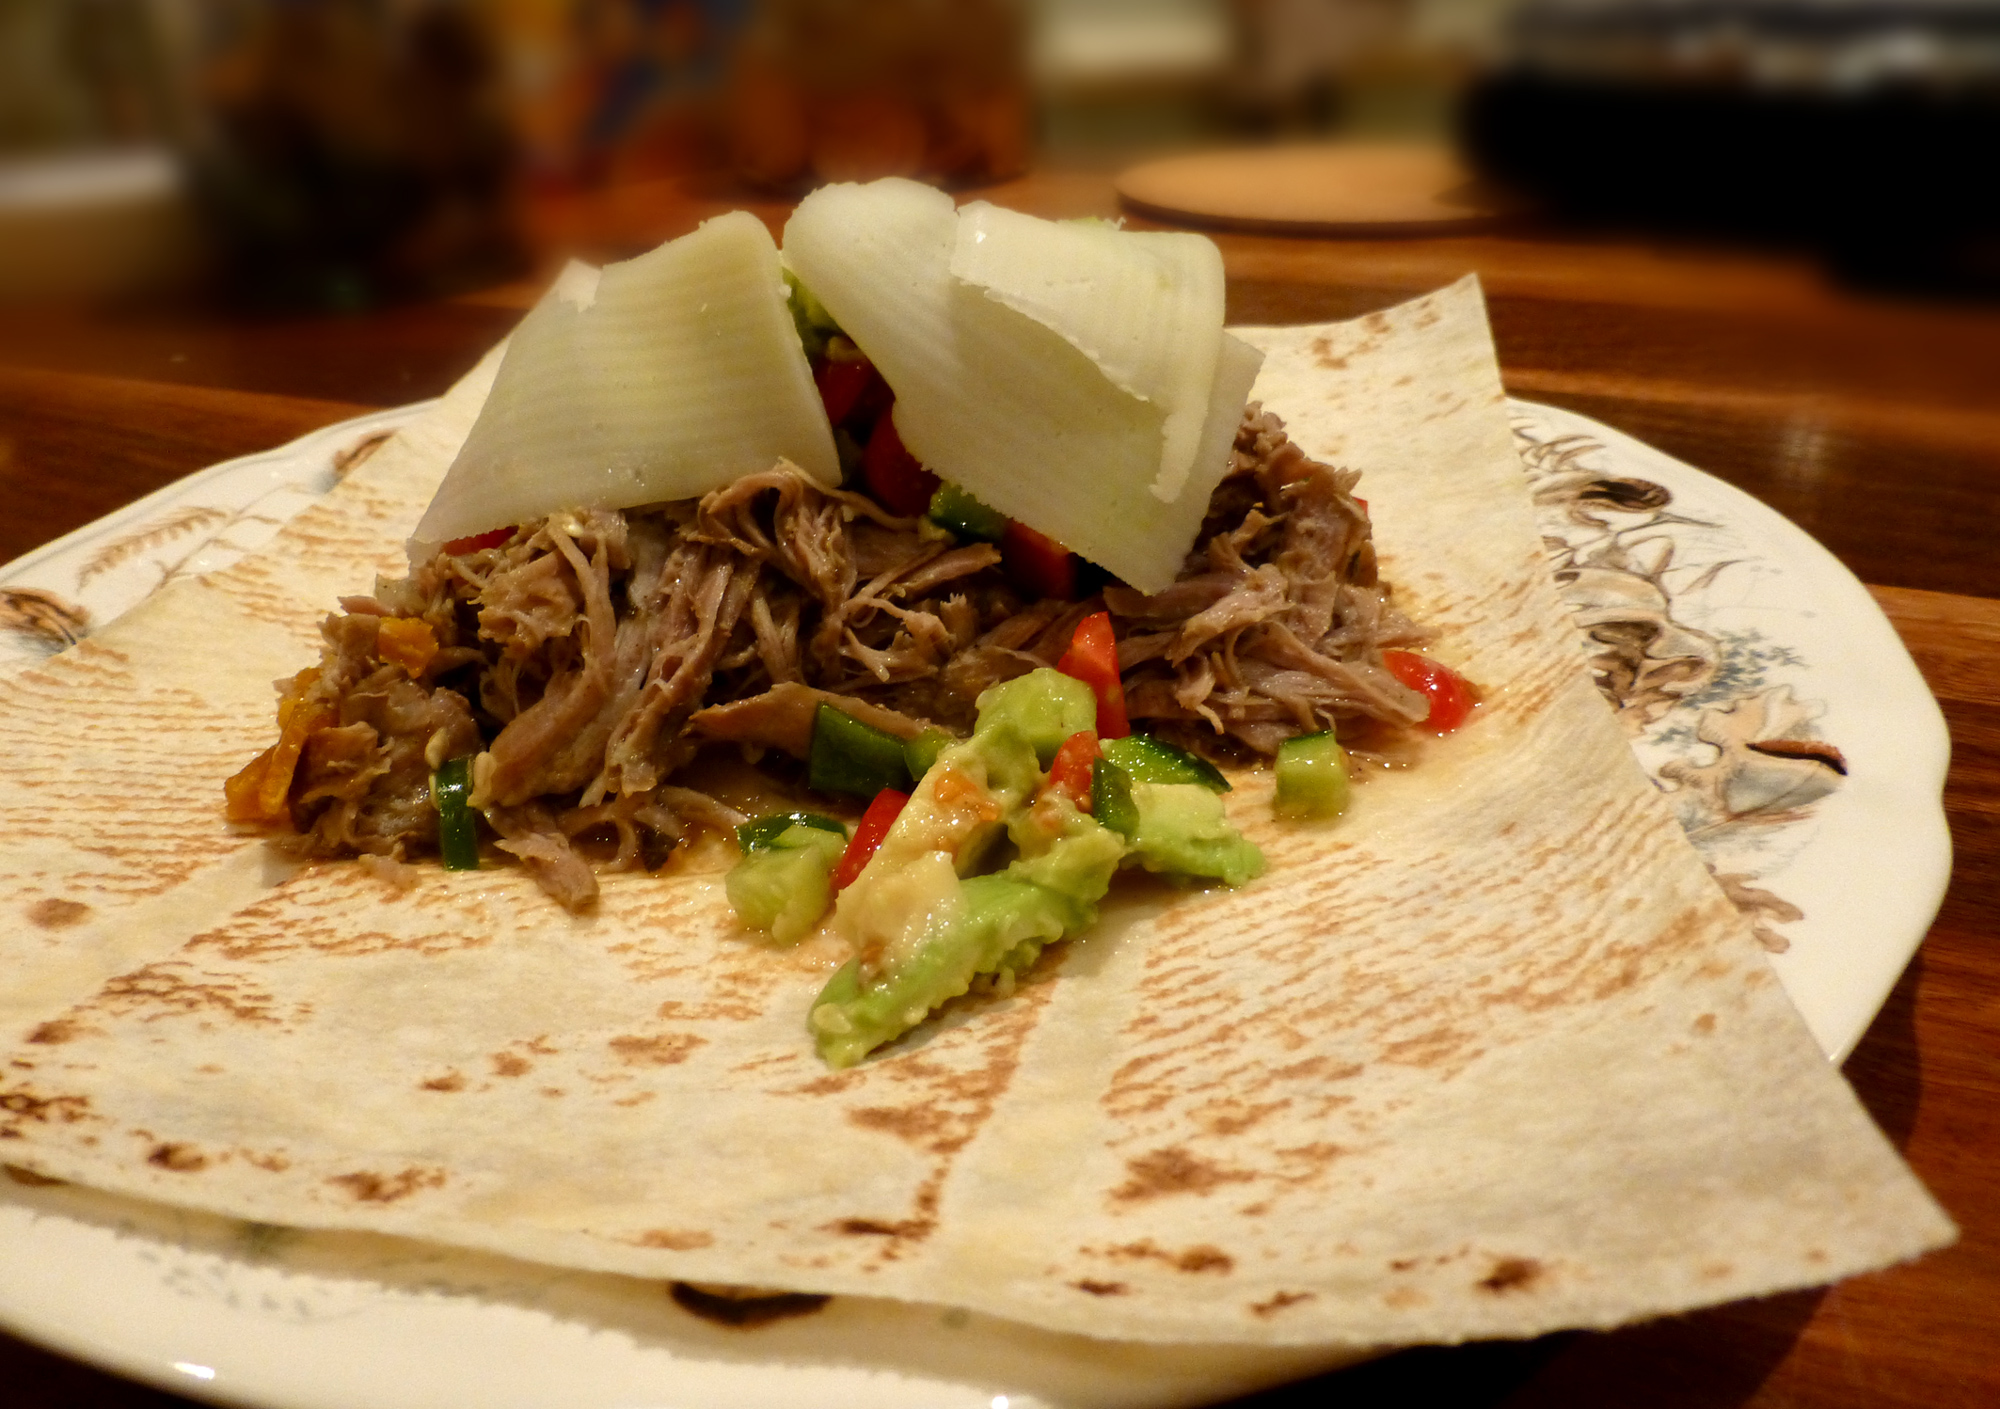 Tacos of slow-cooked-pull-apart pork with guacamole salsa. (I originally served this on round roti breads but I was too busy chatting I forgot to photograph it at the time, so this is the evenings leftovers-remake version)